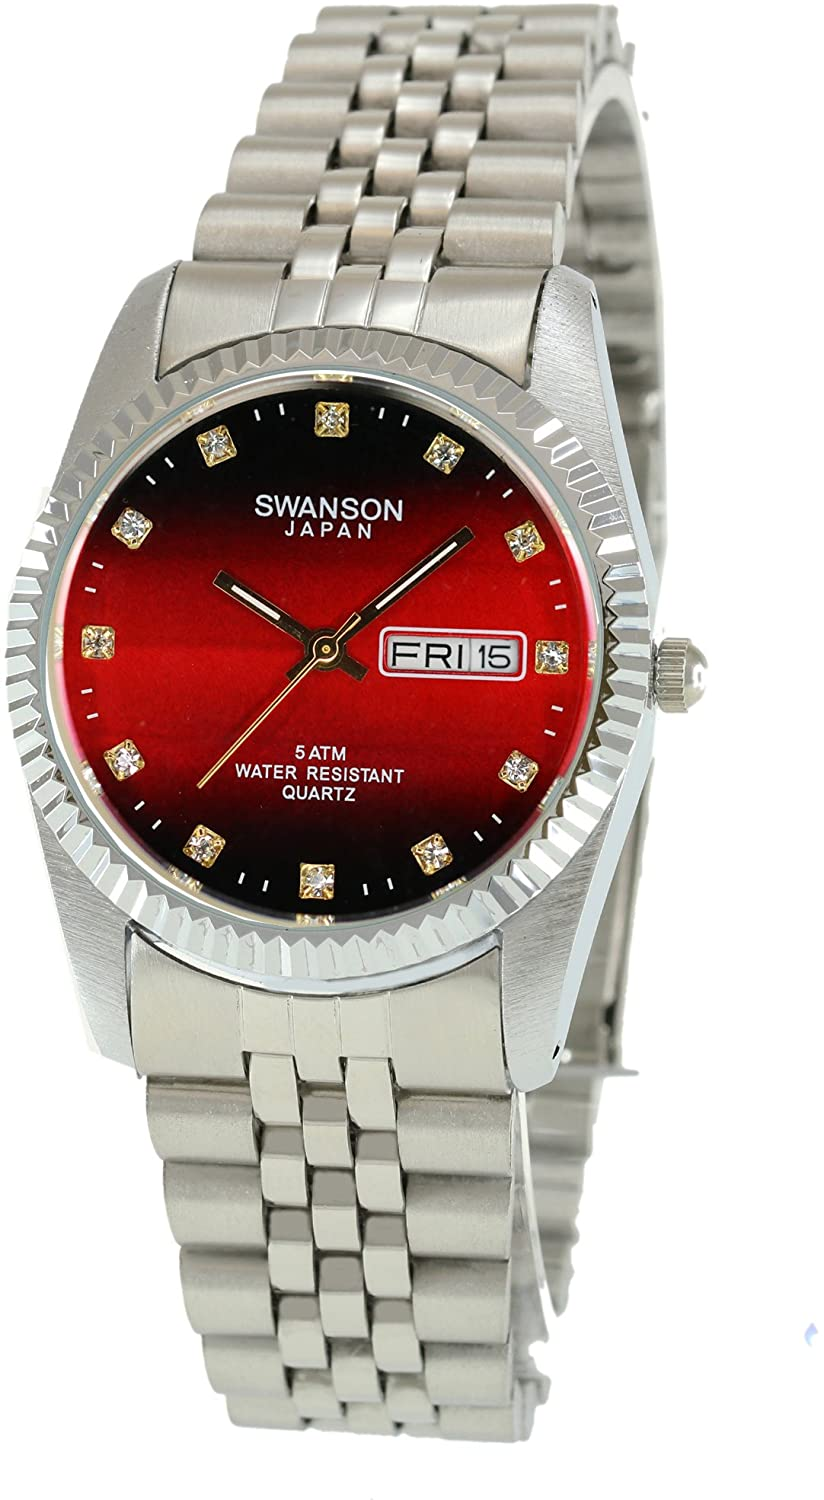 Swanson Men's Stainless Steel Day-Date Watch Red Fade Dial with Stone Numbers with Travel Case